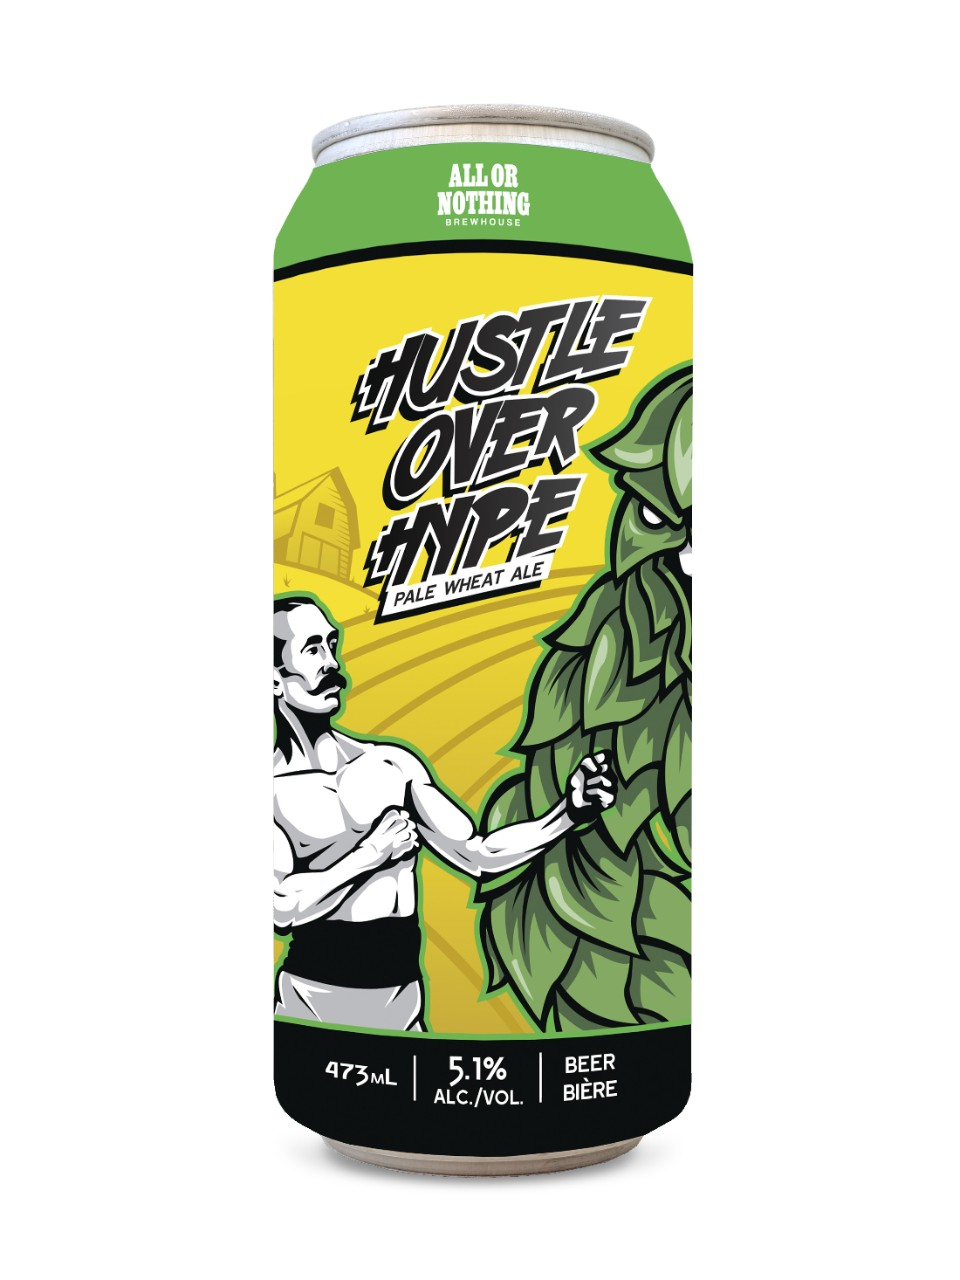 Image for All Or Nothing Hustle Over Hype Pale Wheat Ale from LCBO